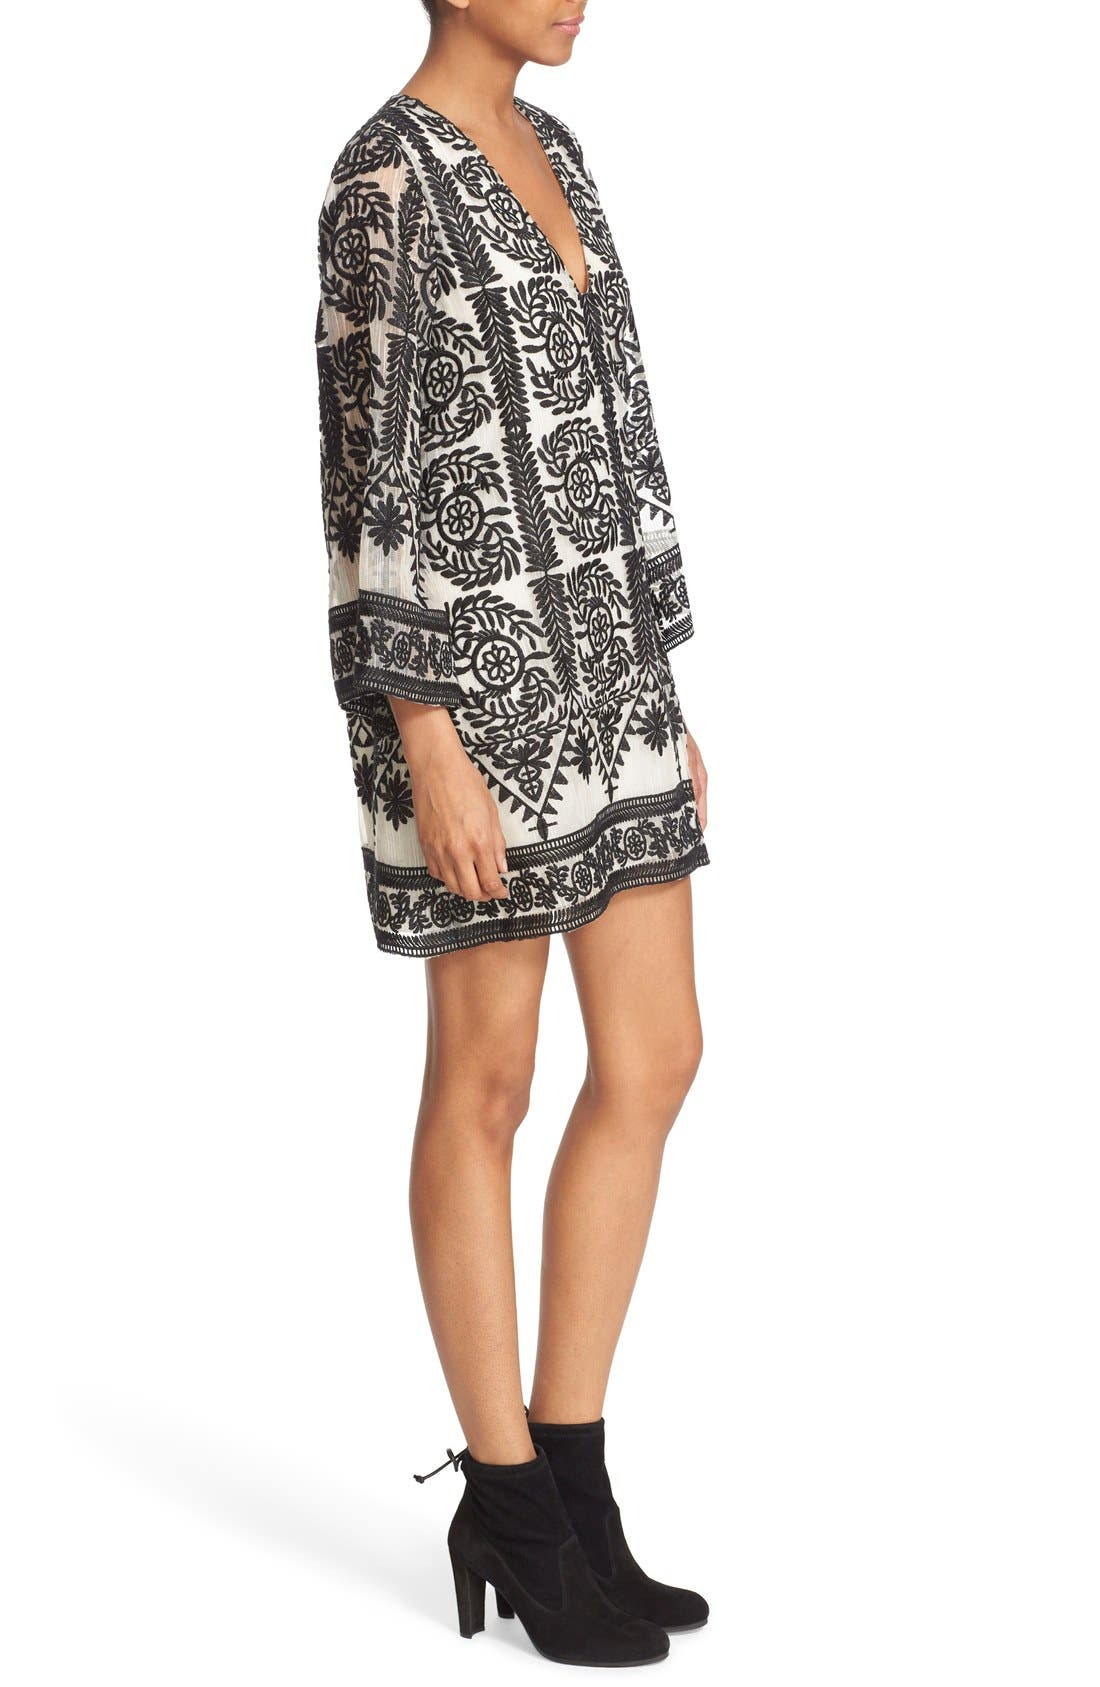 ALICE + OLIVIA, 'Katt' Print V-Neck Caftan Minidress, Alternate thumbnail 5, color, 001